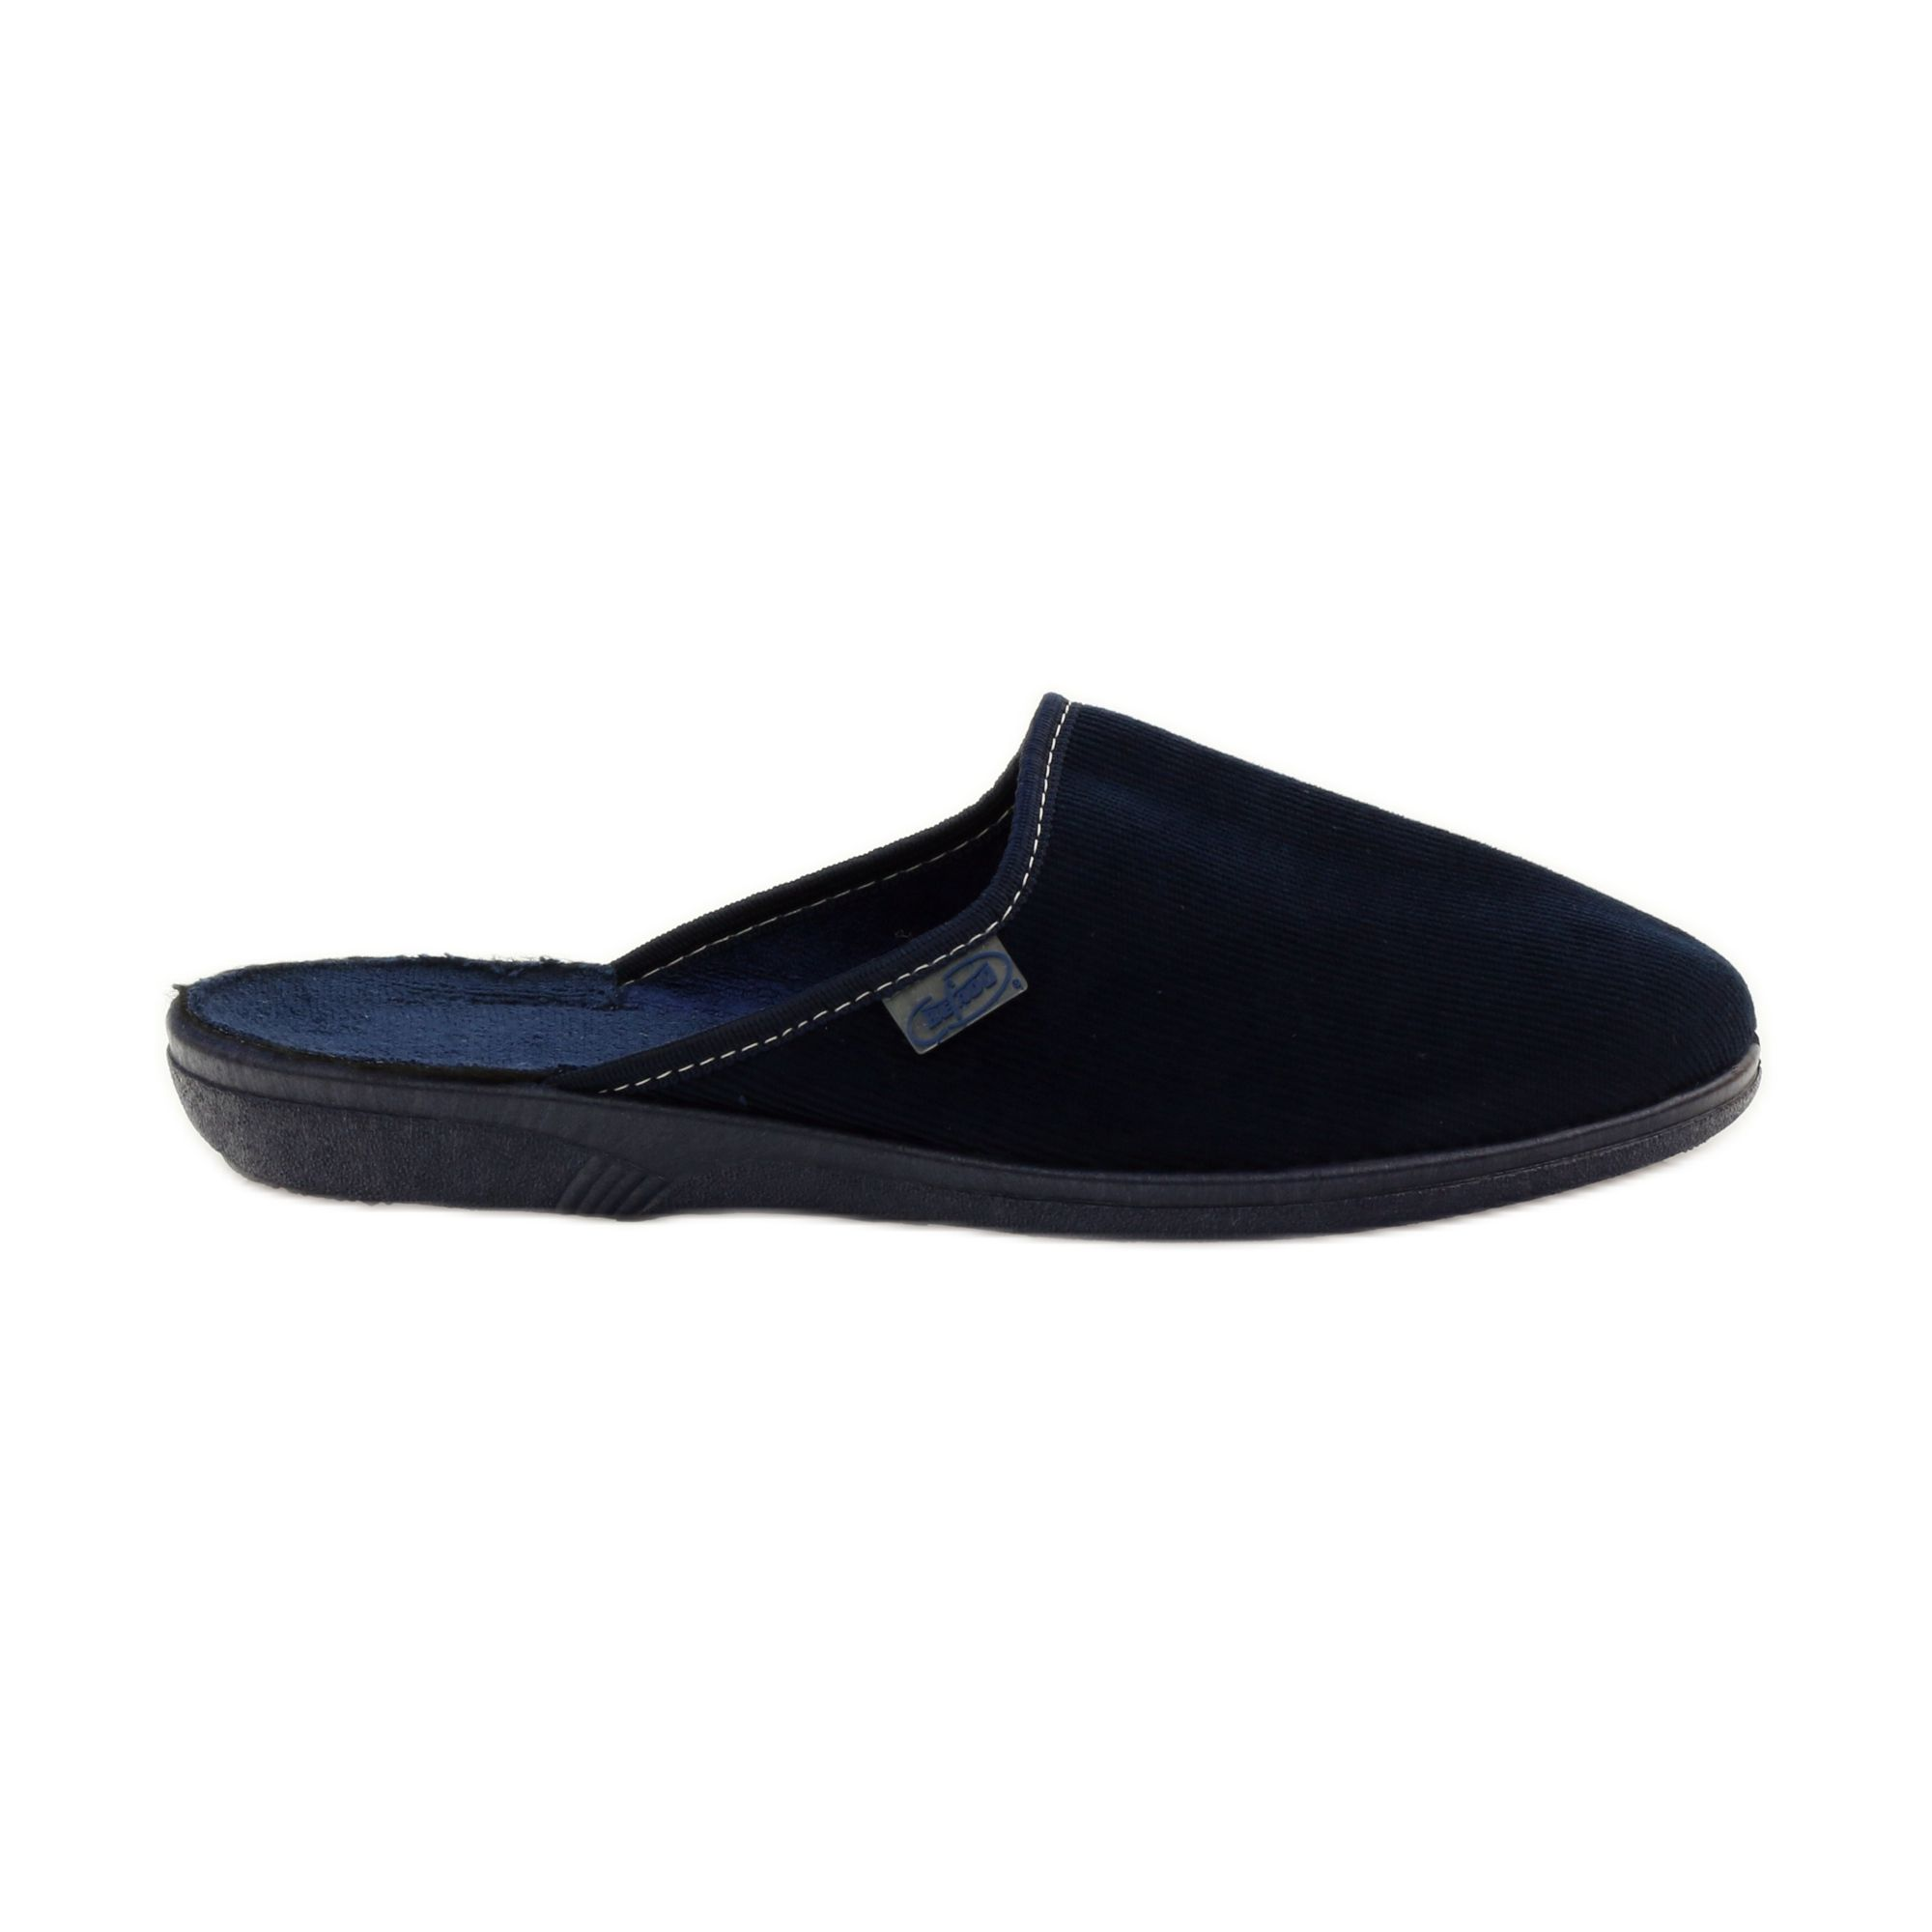 Navy Corduroy Slippers Befado 201q033 Homemade Shoes Womens Slippers Slippers